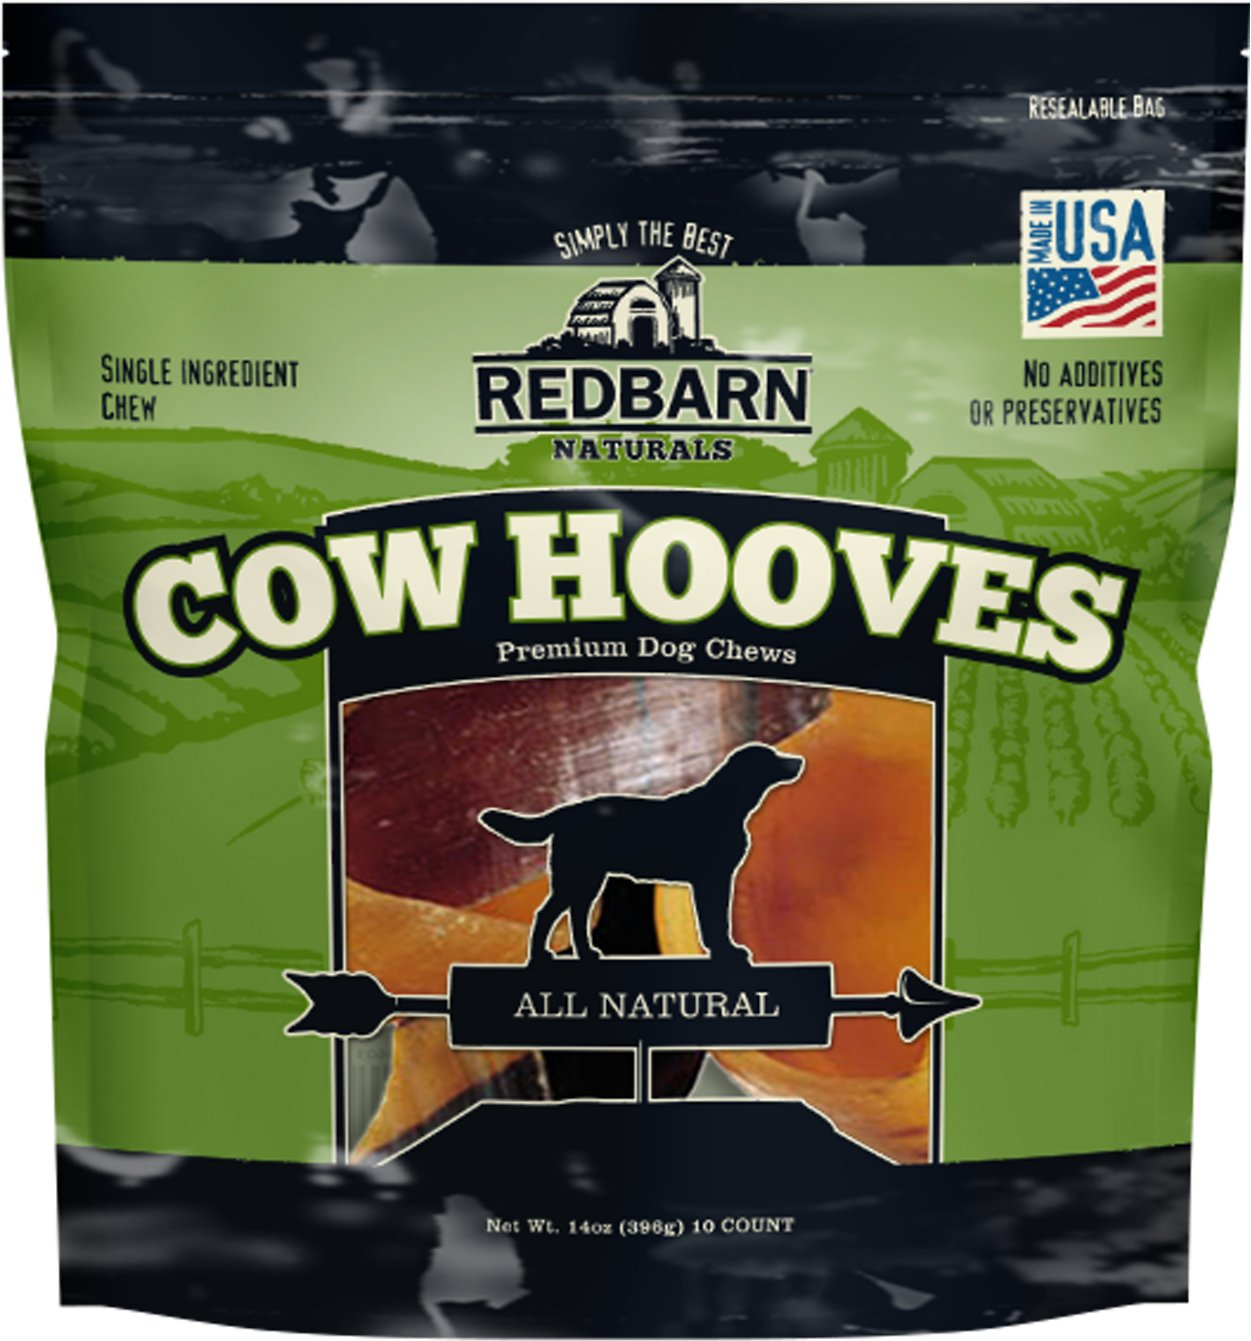 Redbarn Naturals Cow Hooves Dog Treats, 1-count Size: 21-count